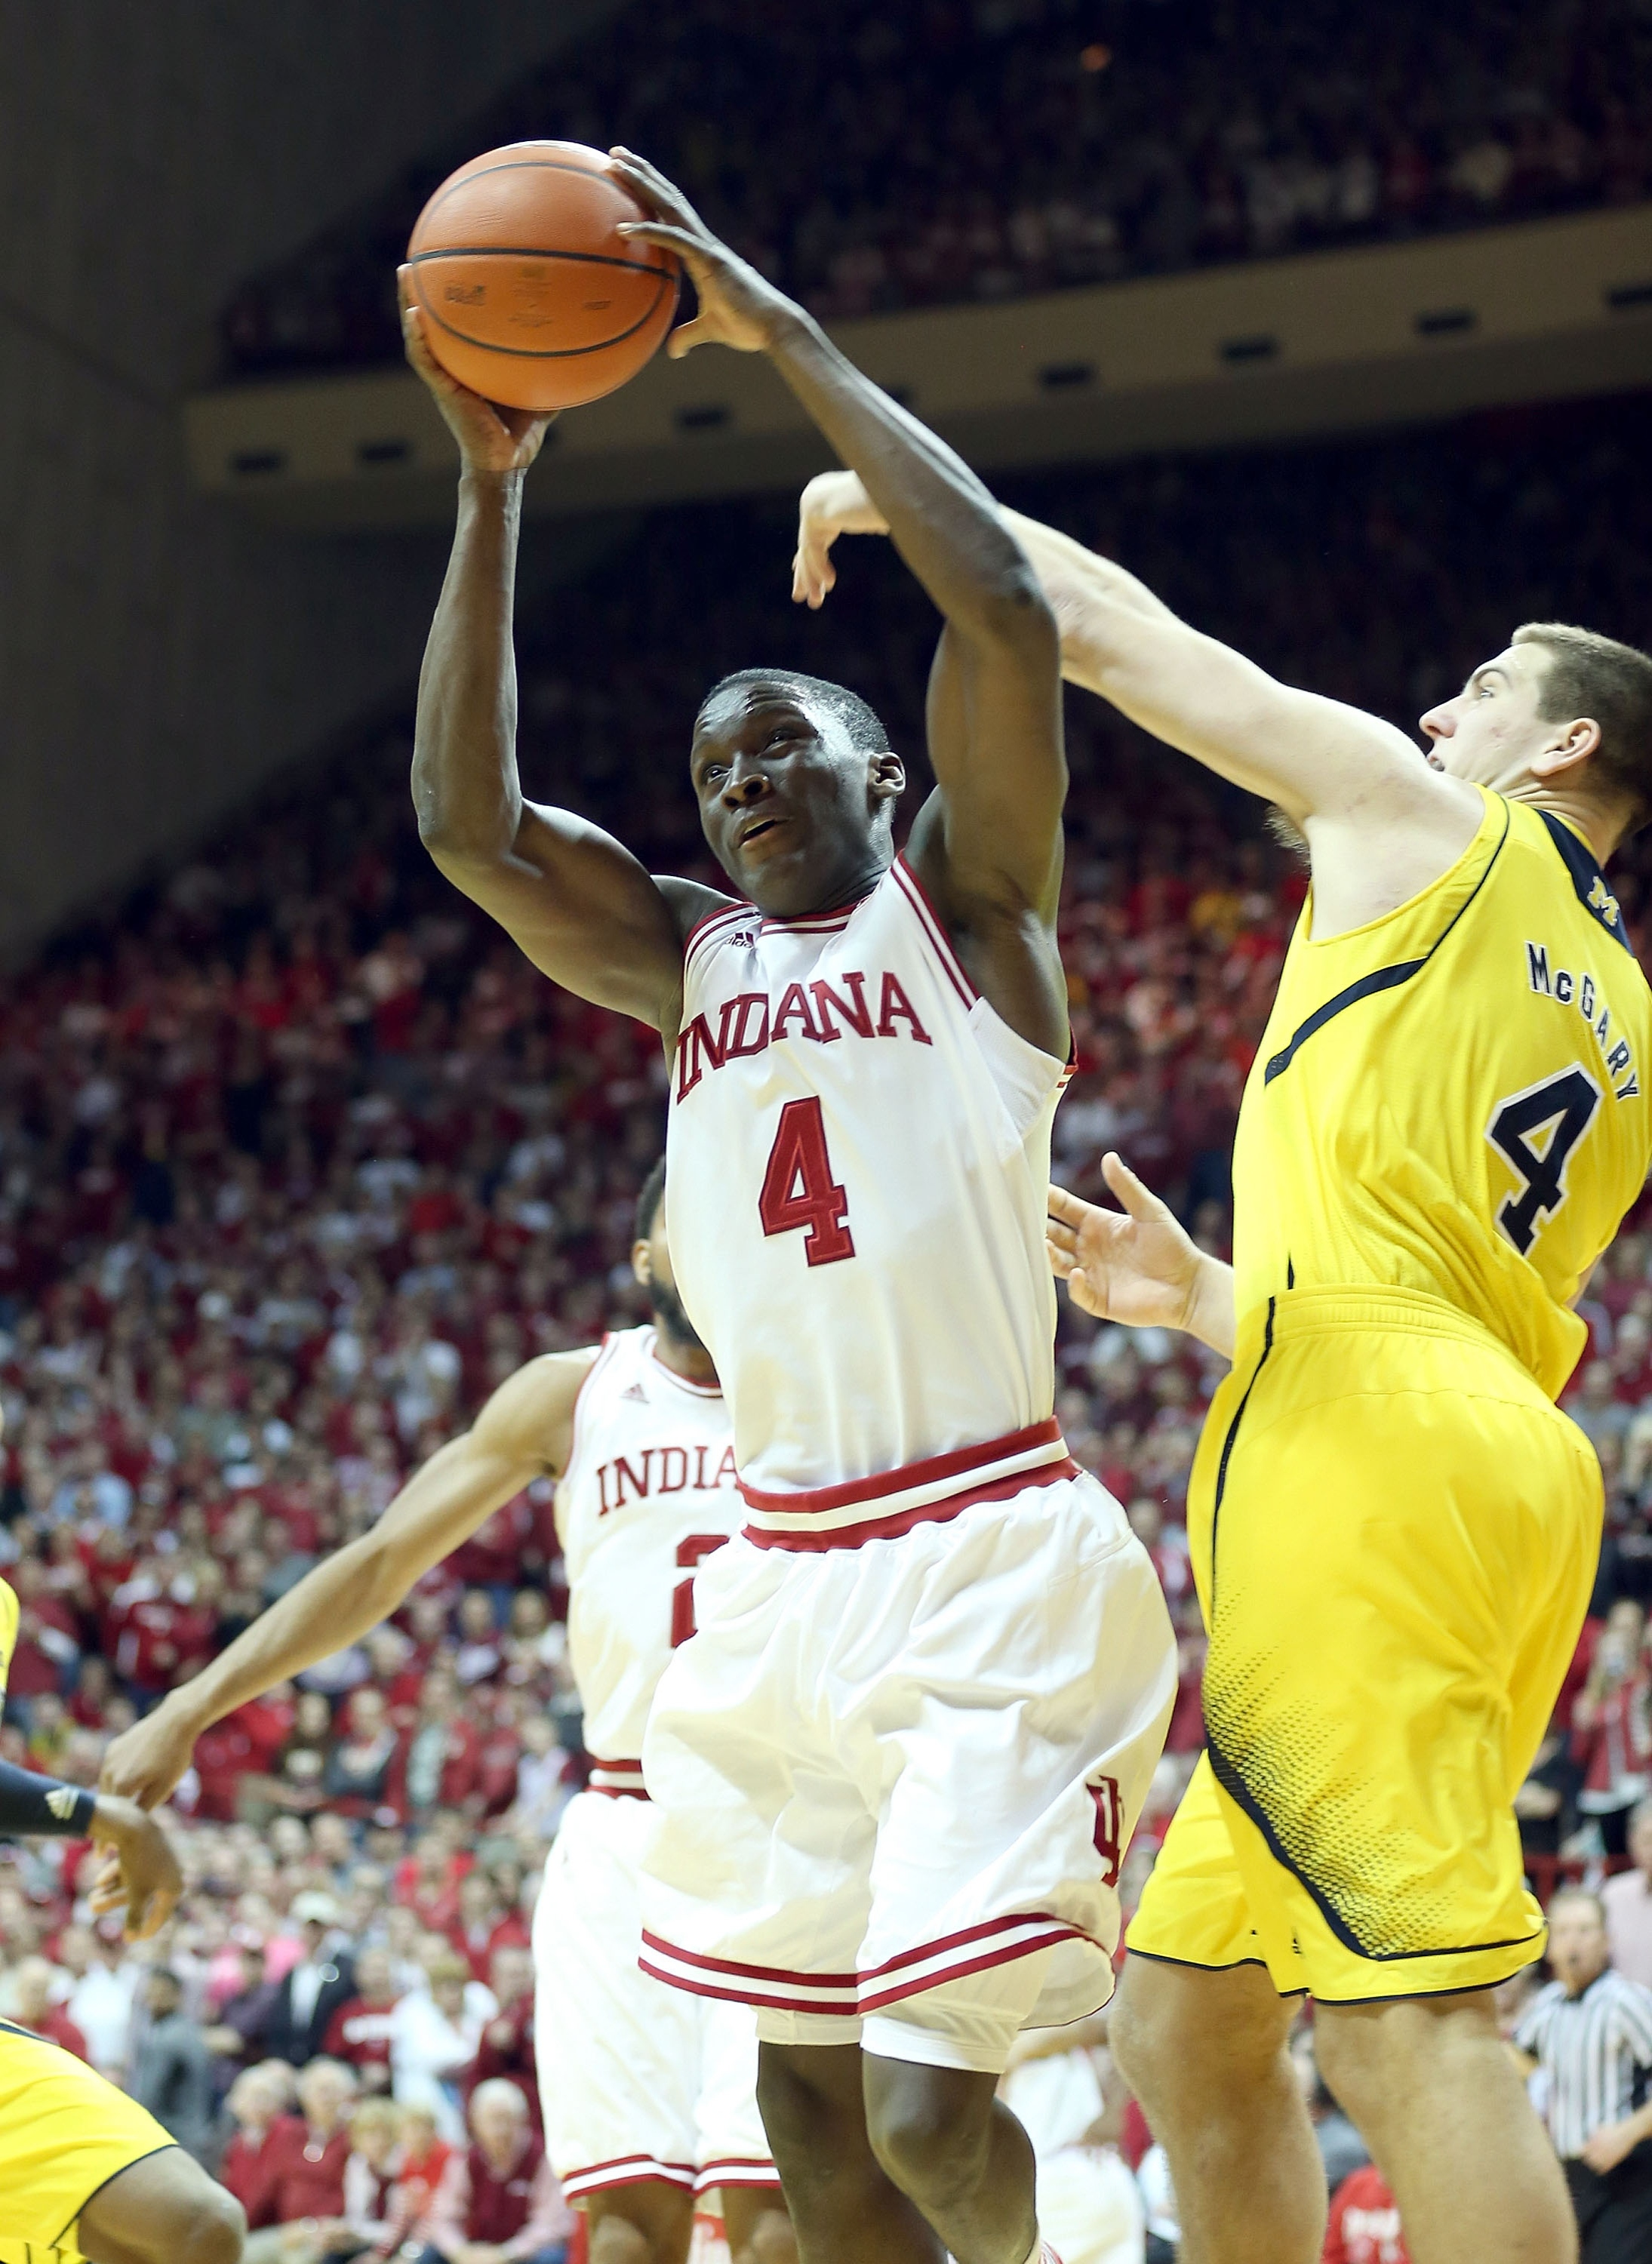 Victor Oladipo had 15 points in Indiana's victory over Michigan. (Getty Images)